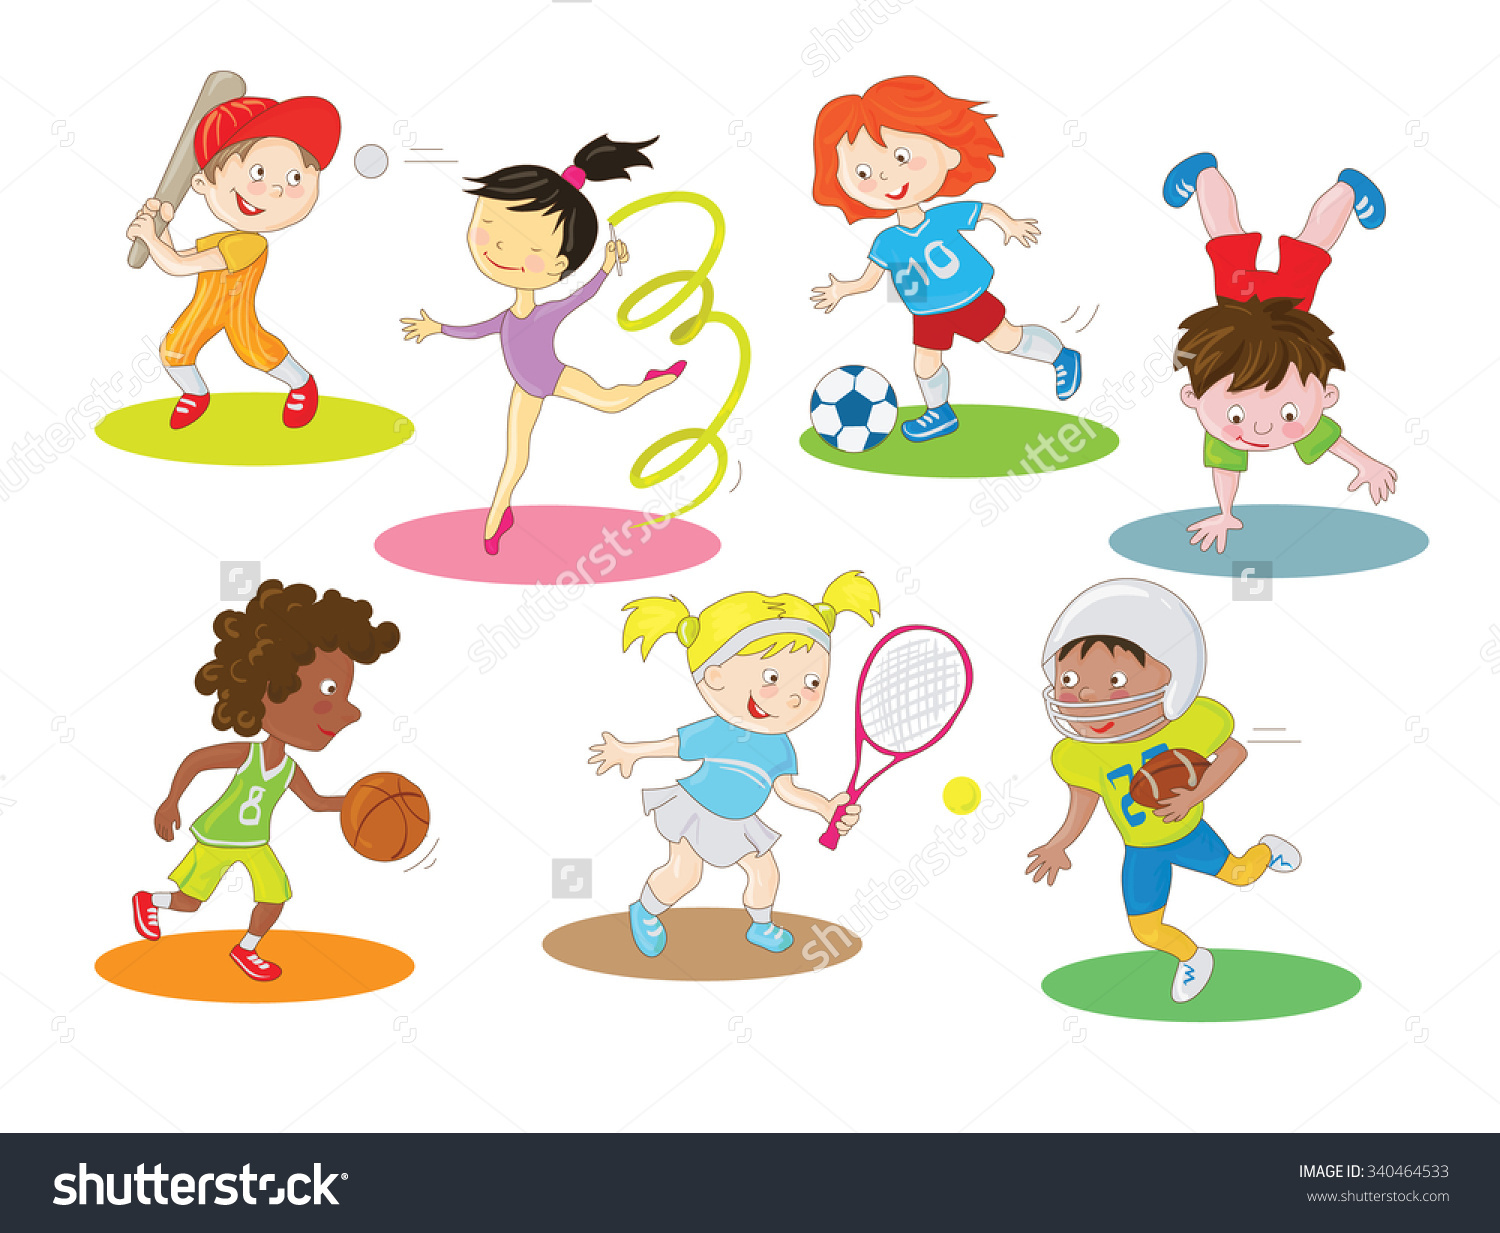 Kids character clipart png library stock Kids character clipart - ClipartFest png library stock